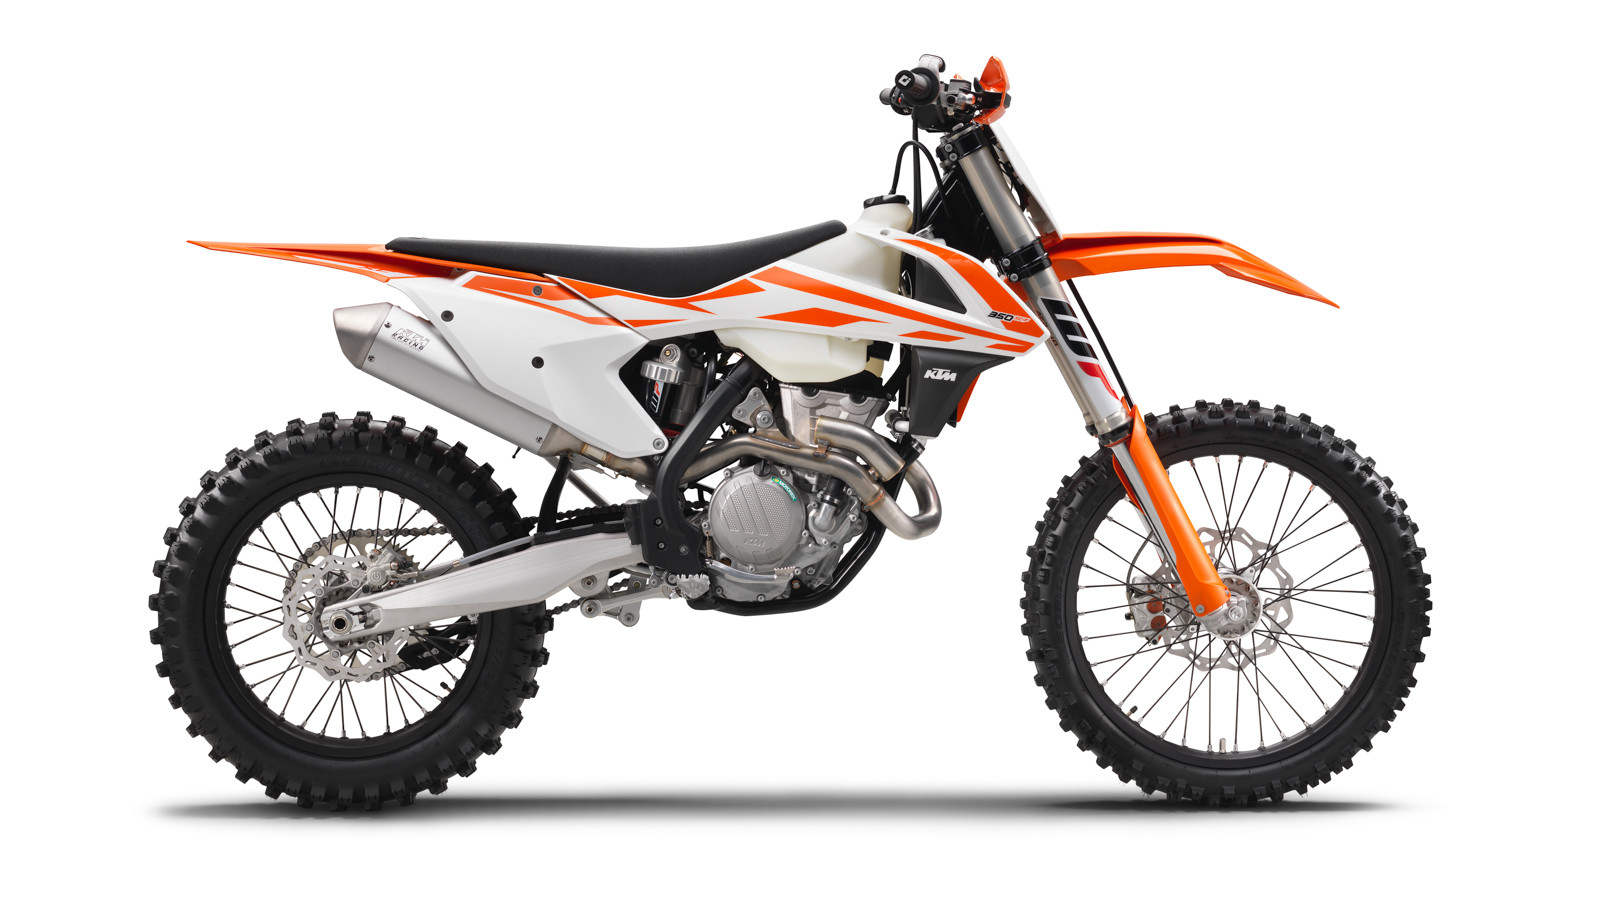 2017 KTM 350 XC-F - First Look: 2017 KTM Motocross and Cross-Country Line - Motocross Pictures - Vital MX